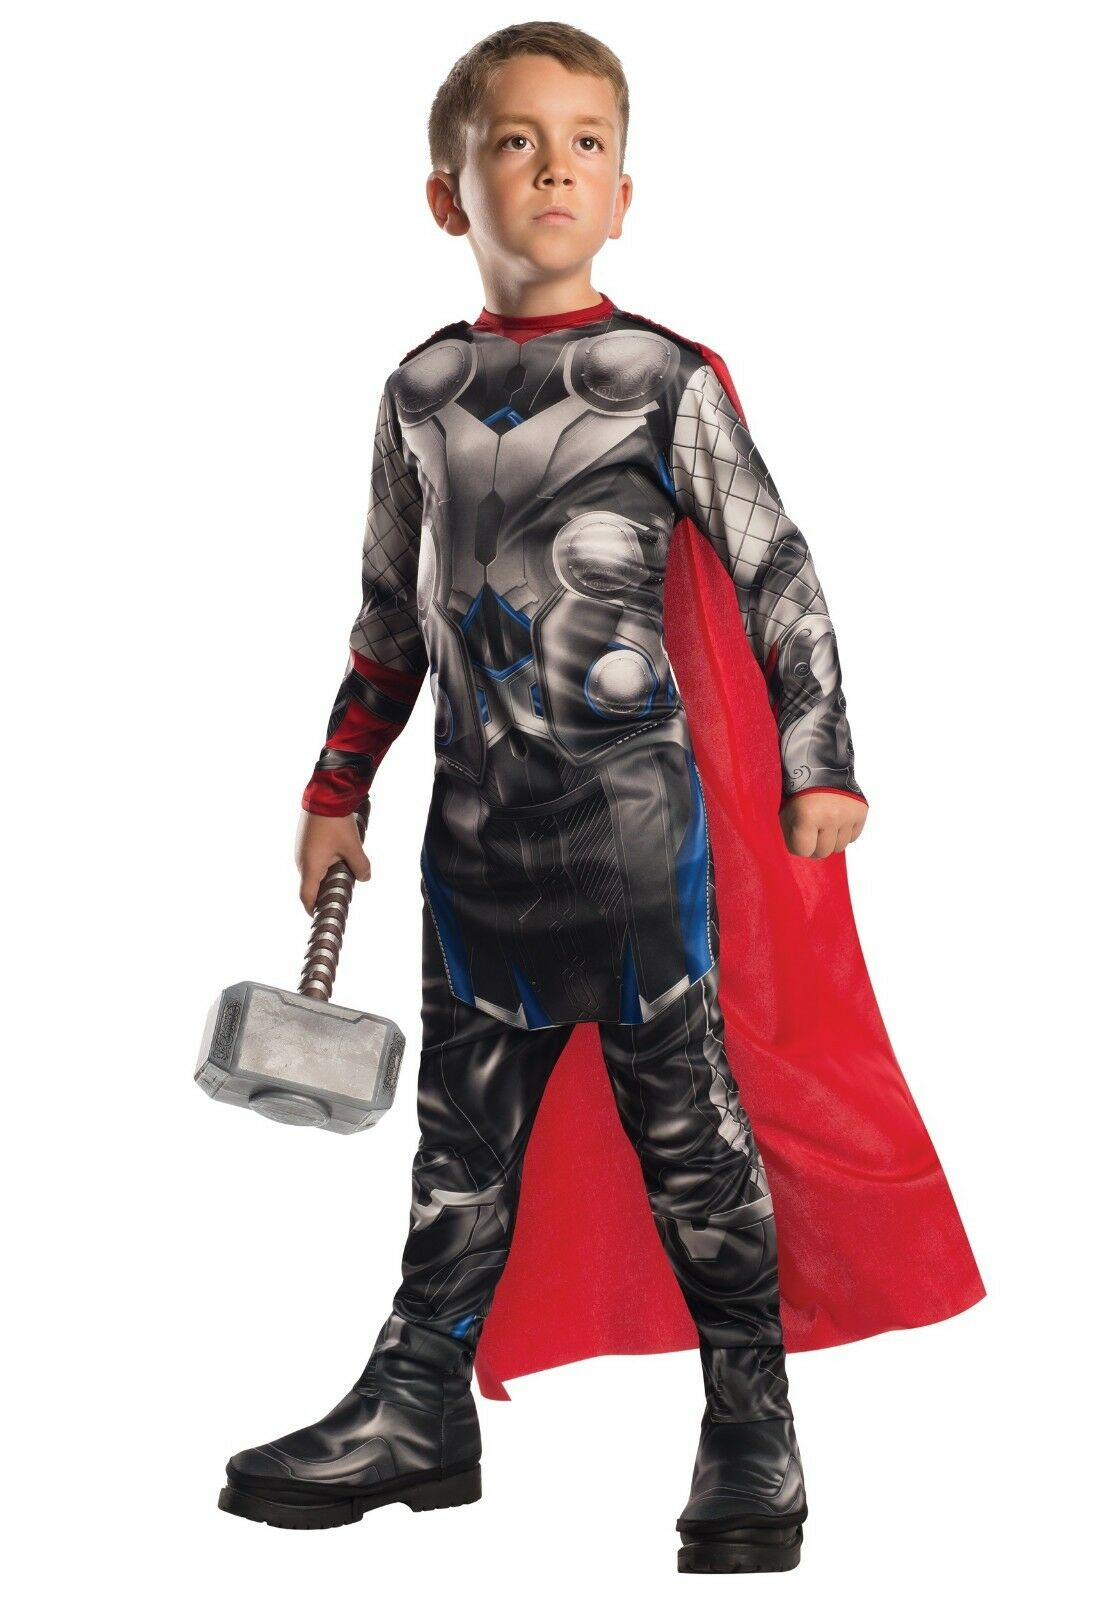 Thor Marvel Avengers Deluxe Costume Size Large L for 8 – 10 years